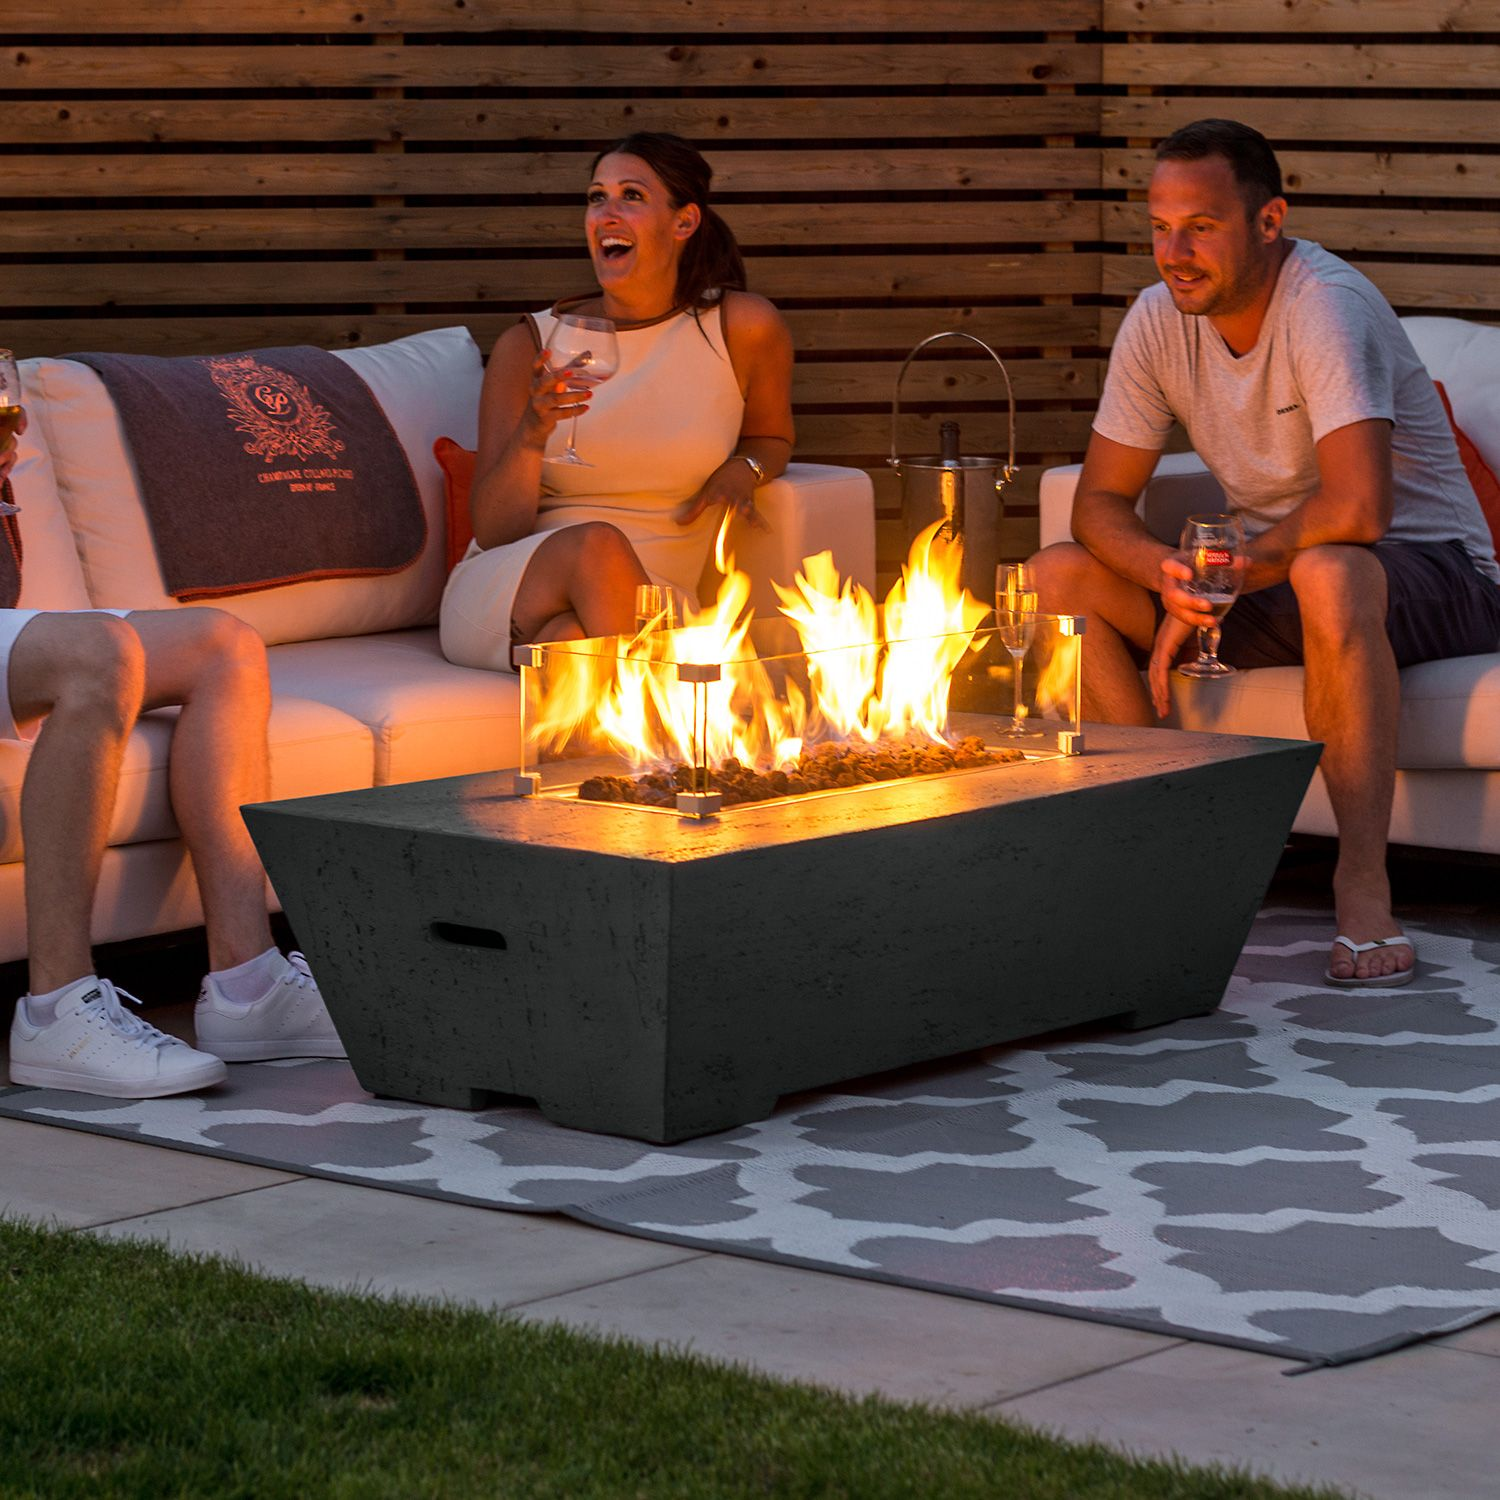 How Far Should Be Chairs From Fire Pit?